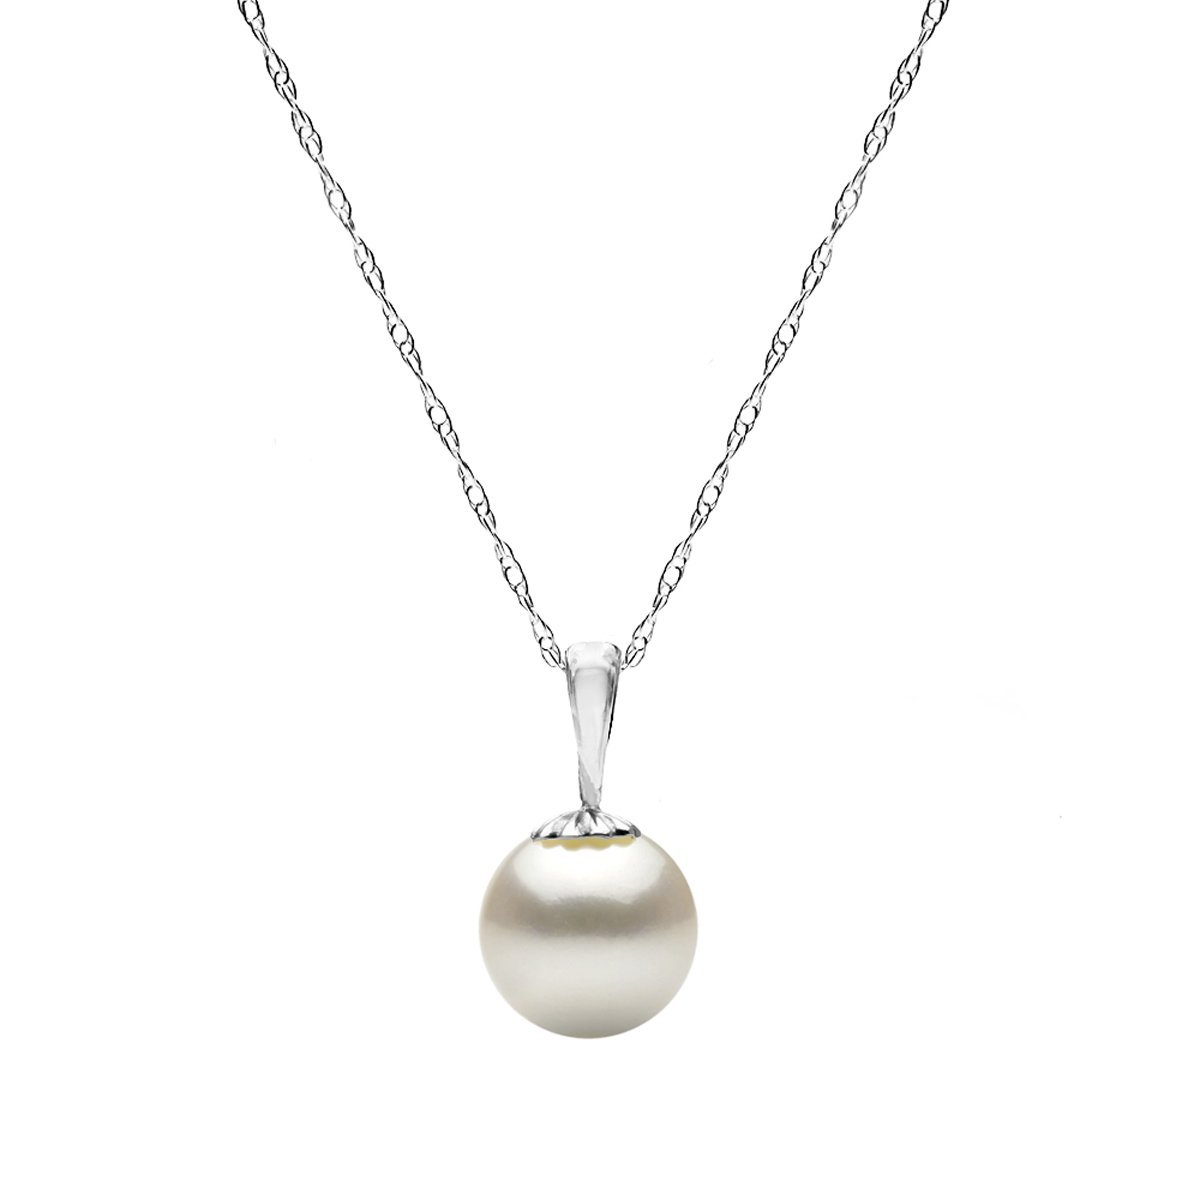 14K Gold Chain White Freshwater Cultured Pearl Pendant Necklace for Women 18 inch